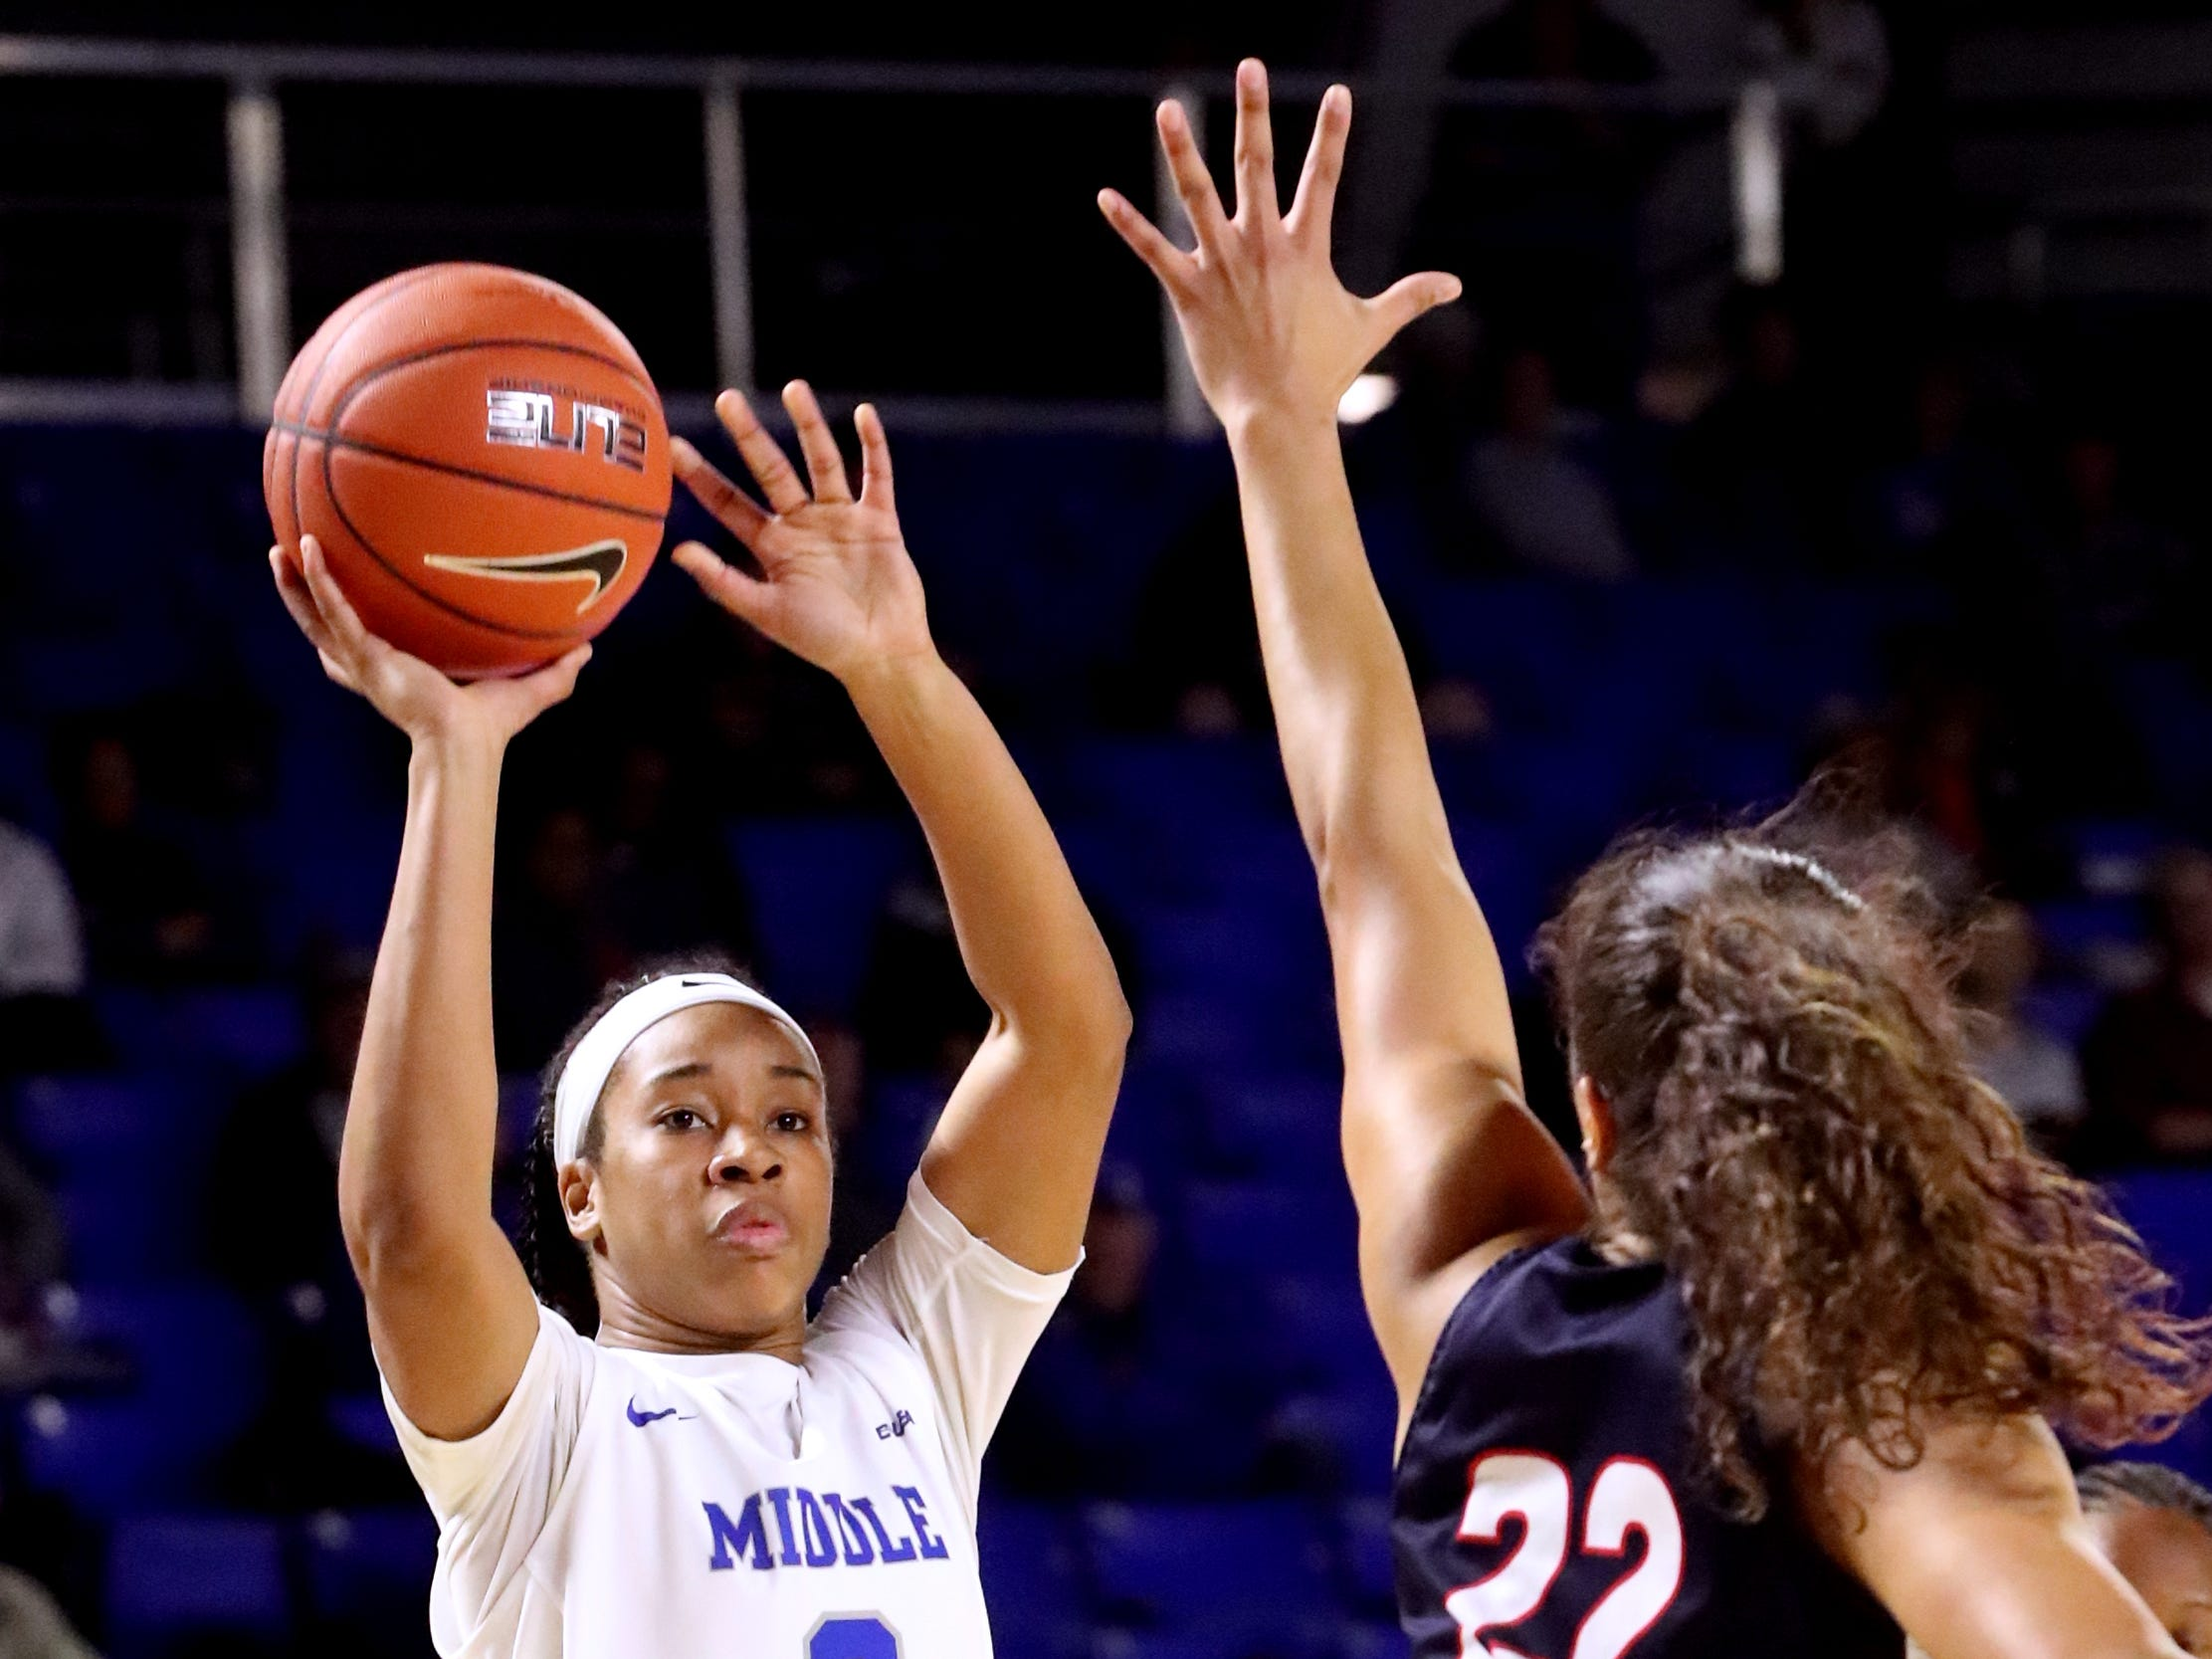 MTSU's Kyla Allison (3) goes up for a basket as Belmont's Maddie Cook (22) guards her during the game at MTSU on Monday, Nov. 19, 2018.